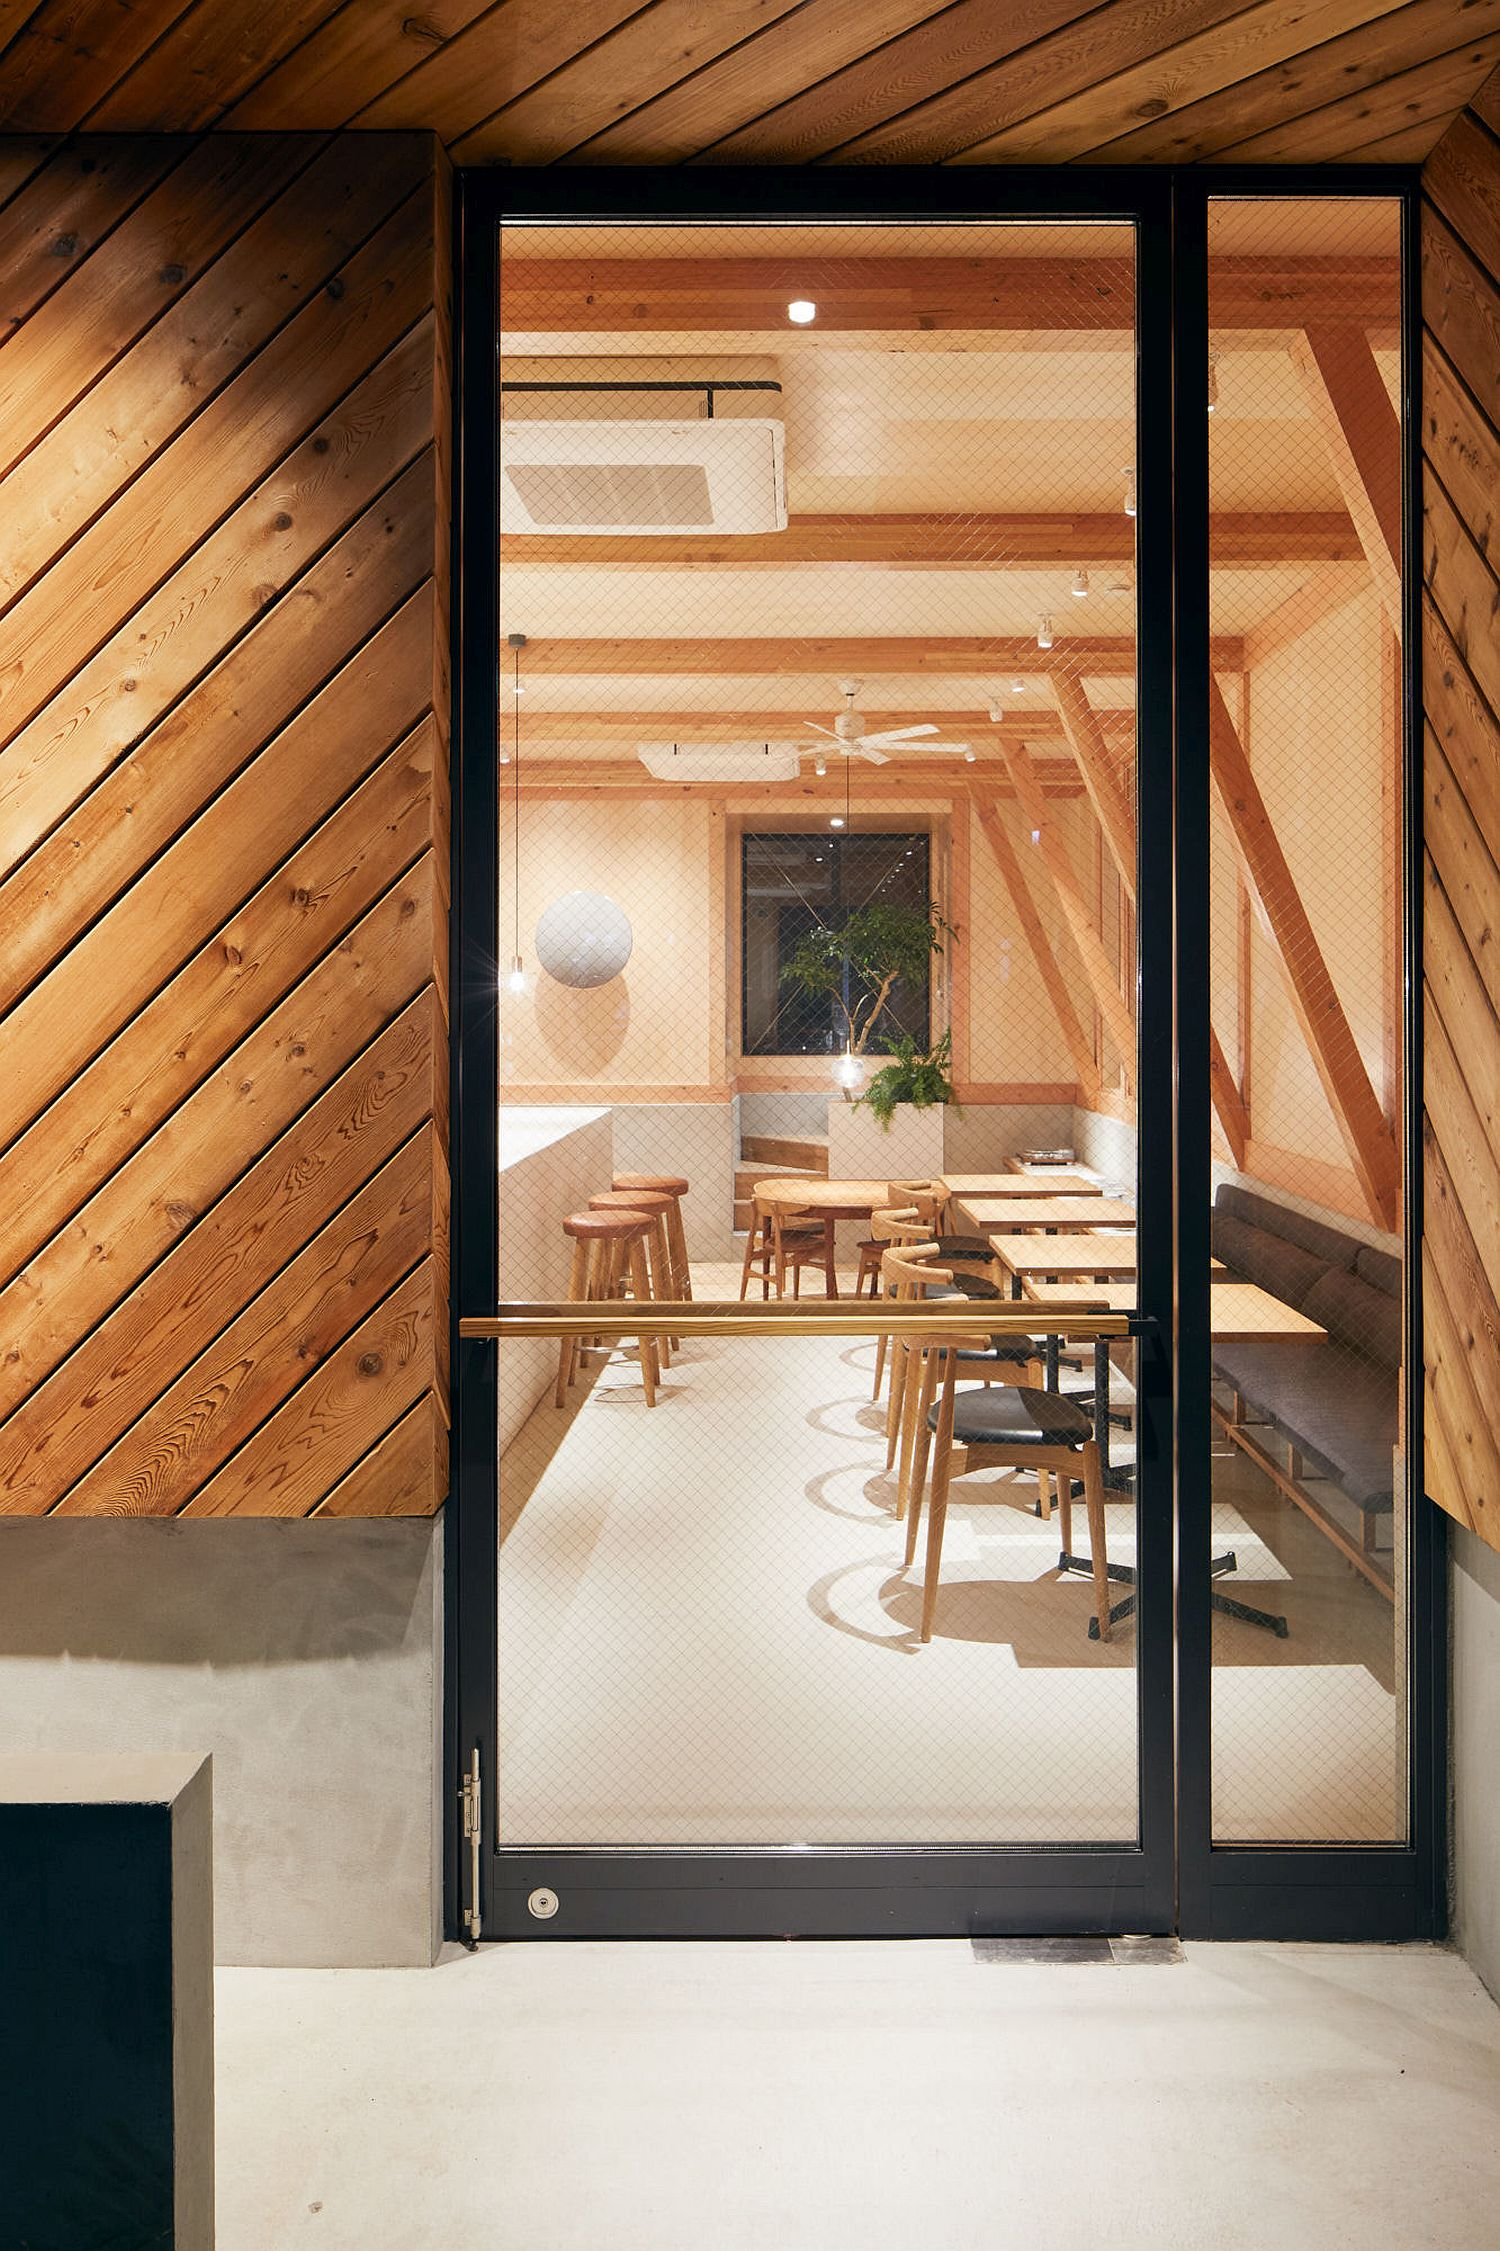 View-from-outside-of-the-cafe-shaped-in-wood-and-terrazo